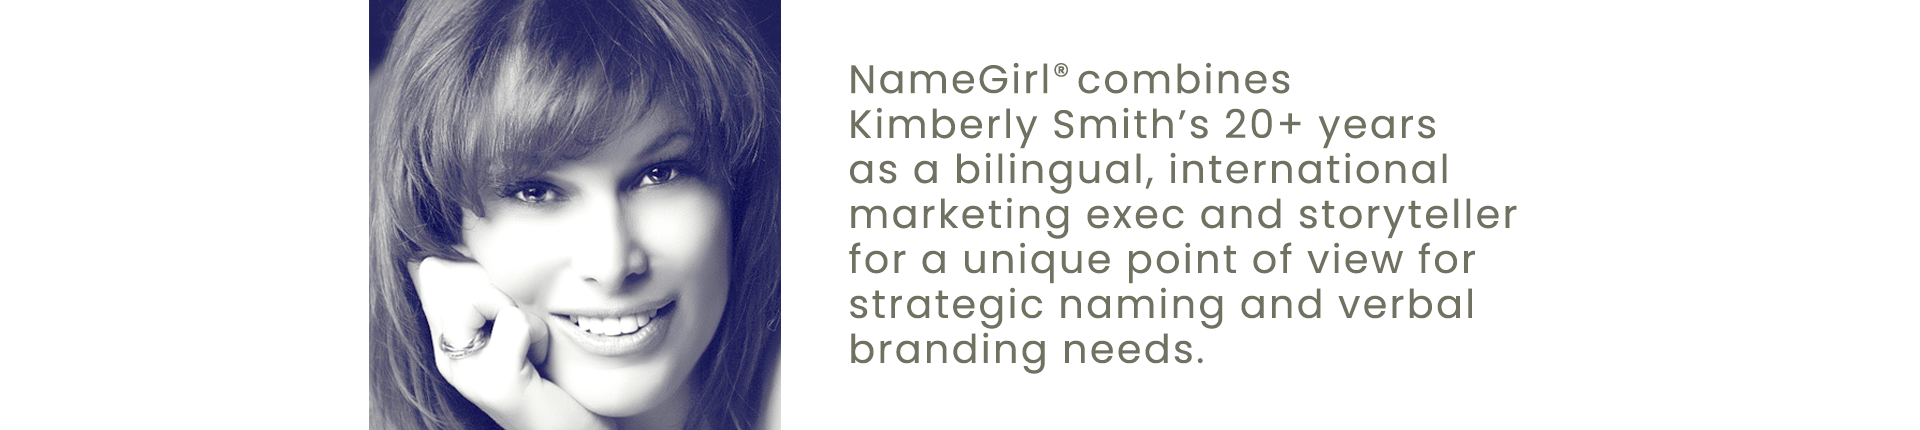 NameGirl combines Kim Smith's 20+ years as a bilingual, international marketing exec and storyteller